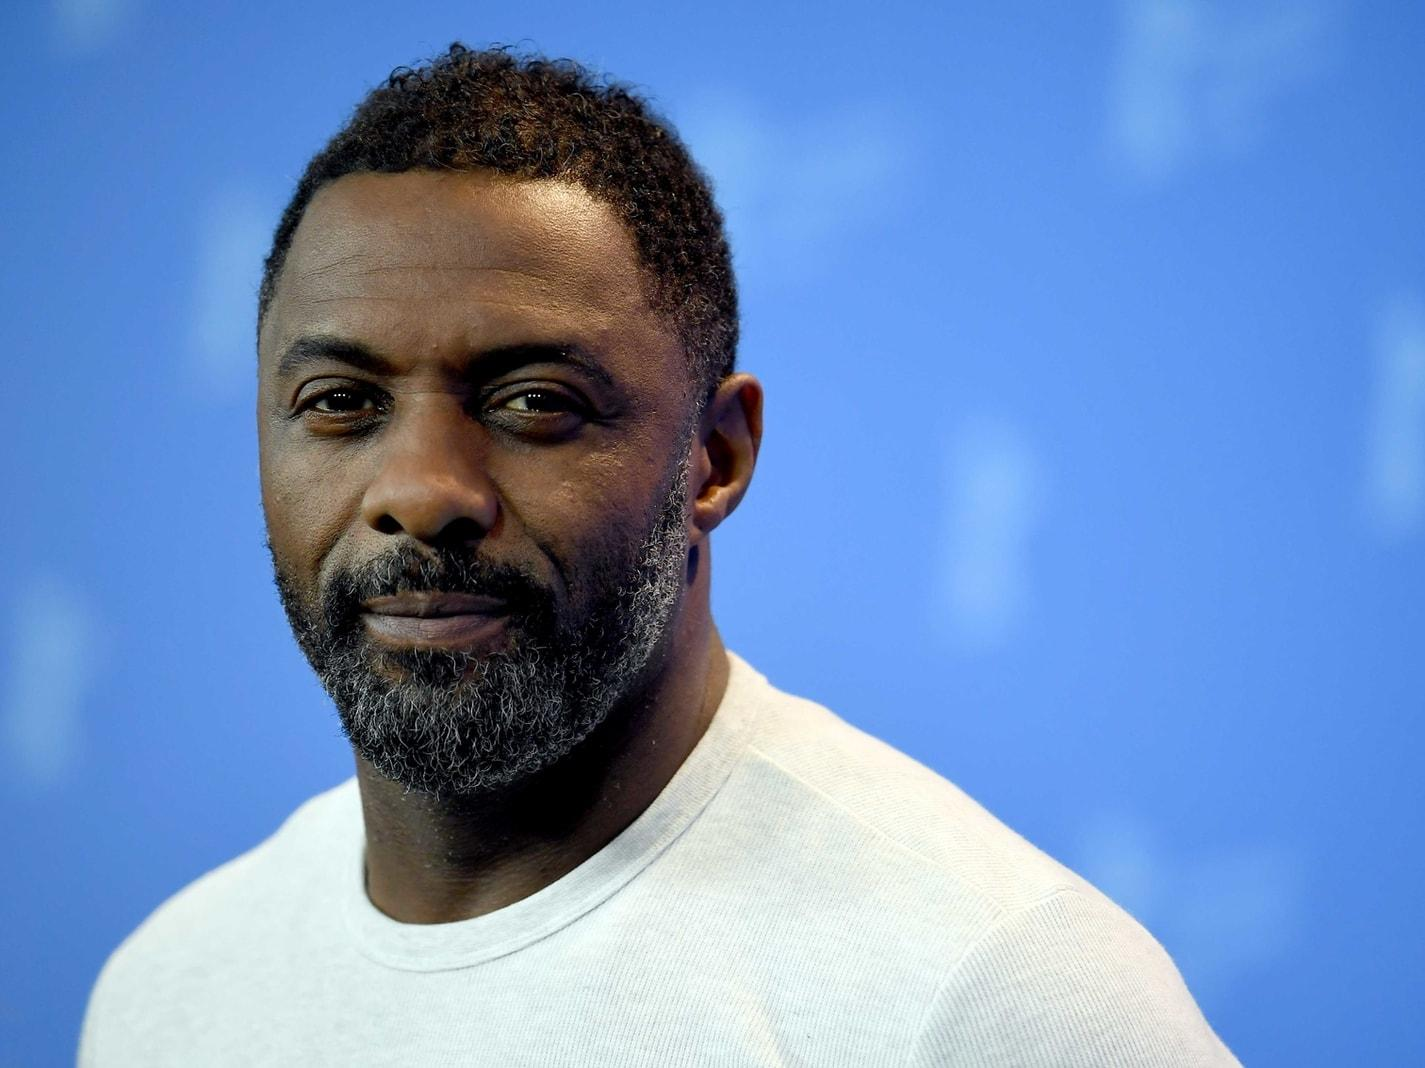 Idris Elba BS